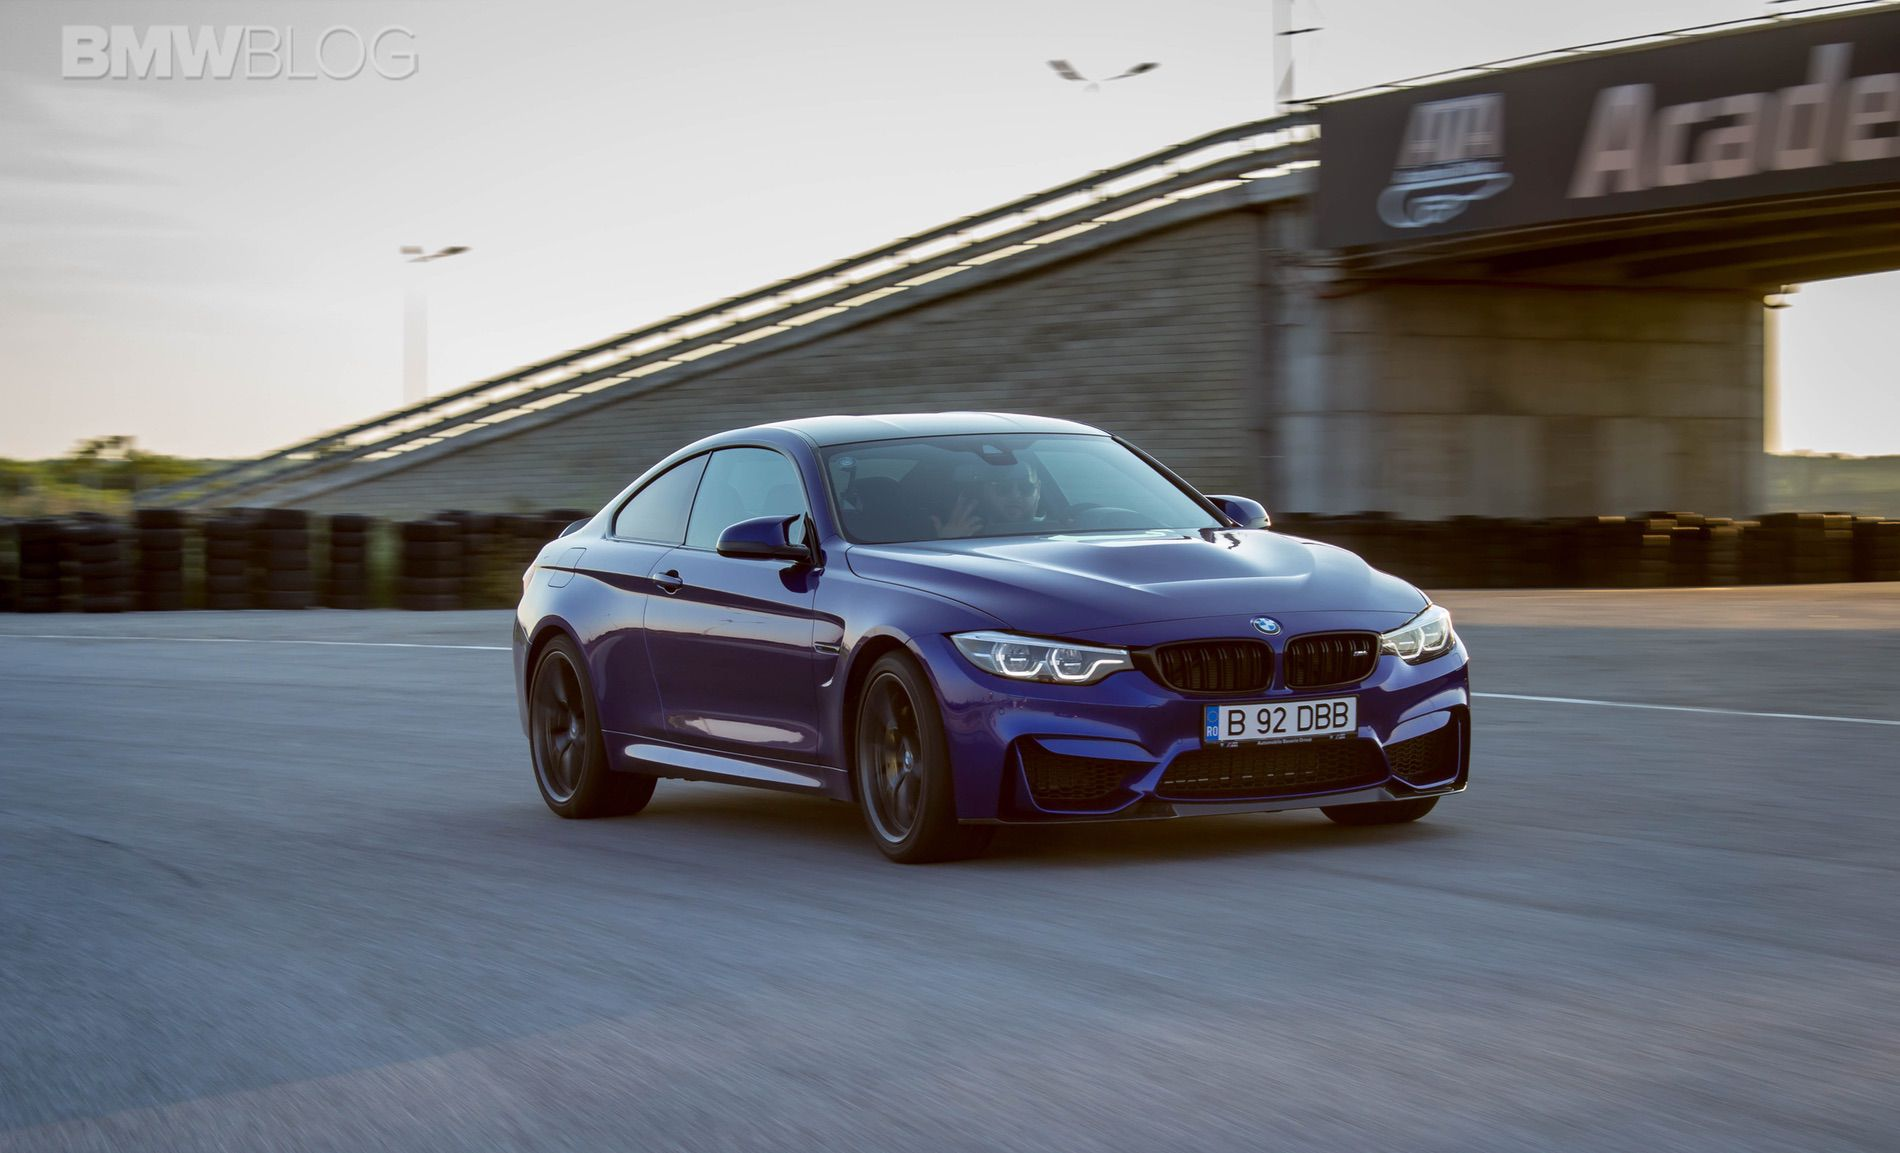 Bmw Rd Boss Confirms Manual Awd For Upcoming M4